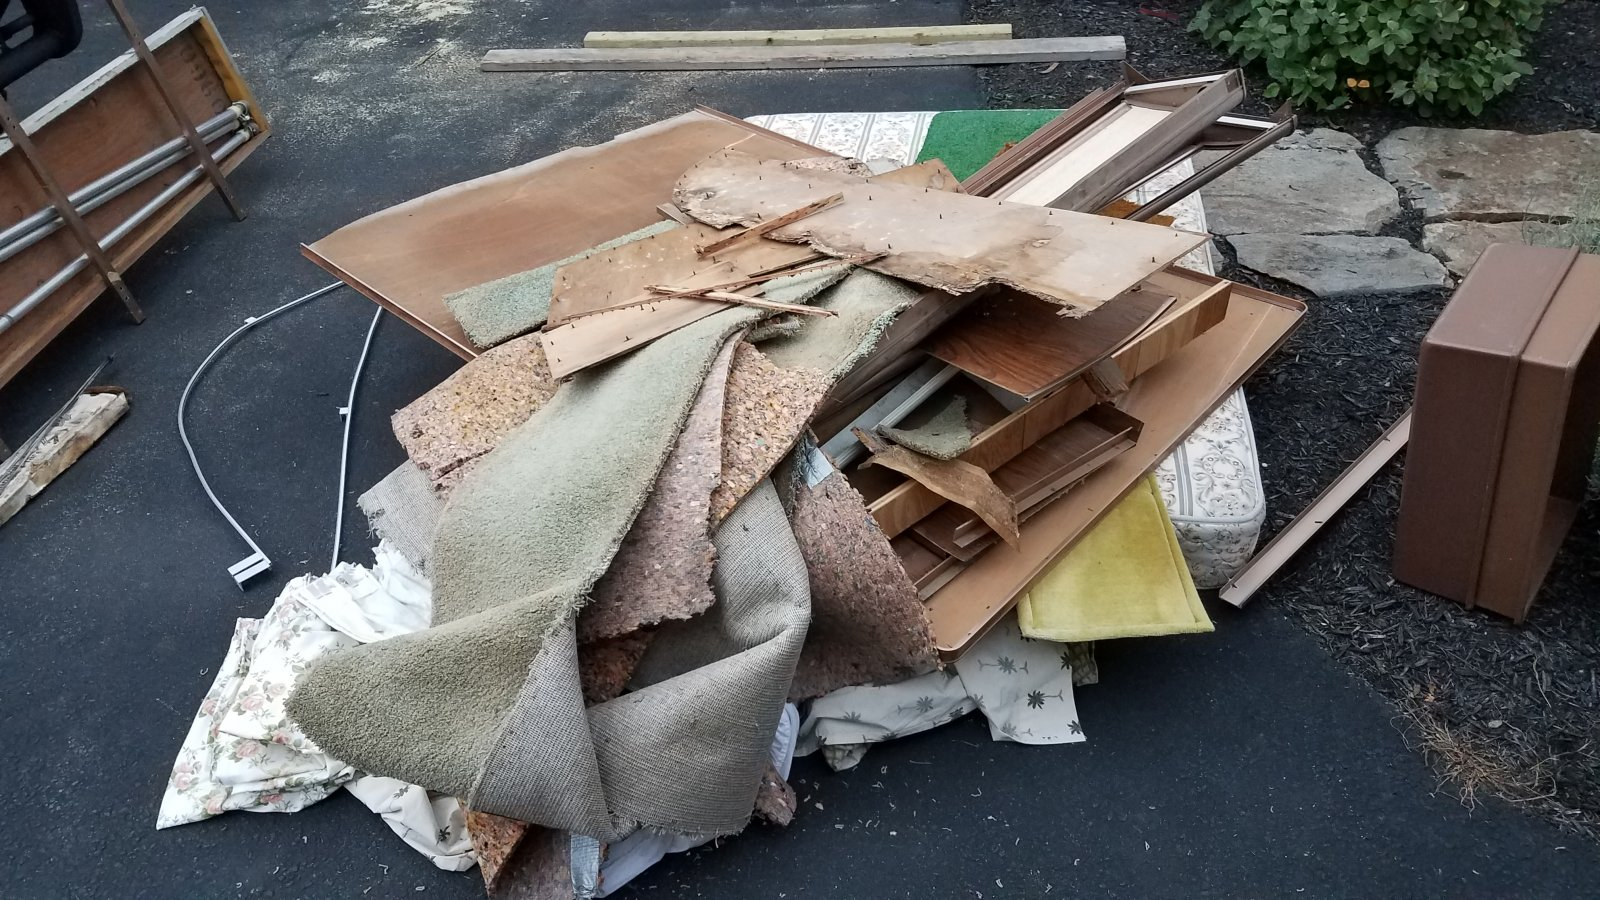 Click image for larger version  Name:Day 1 Trash Pile -2.jpg Views:12 Size:355.7 KB ID:325414